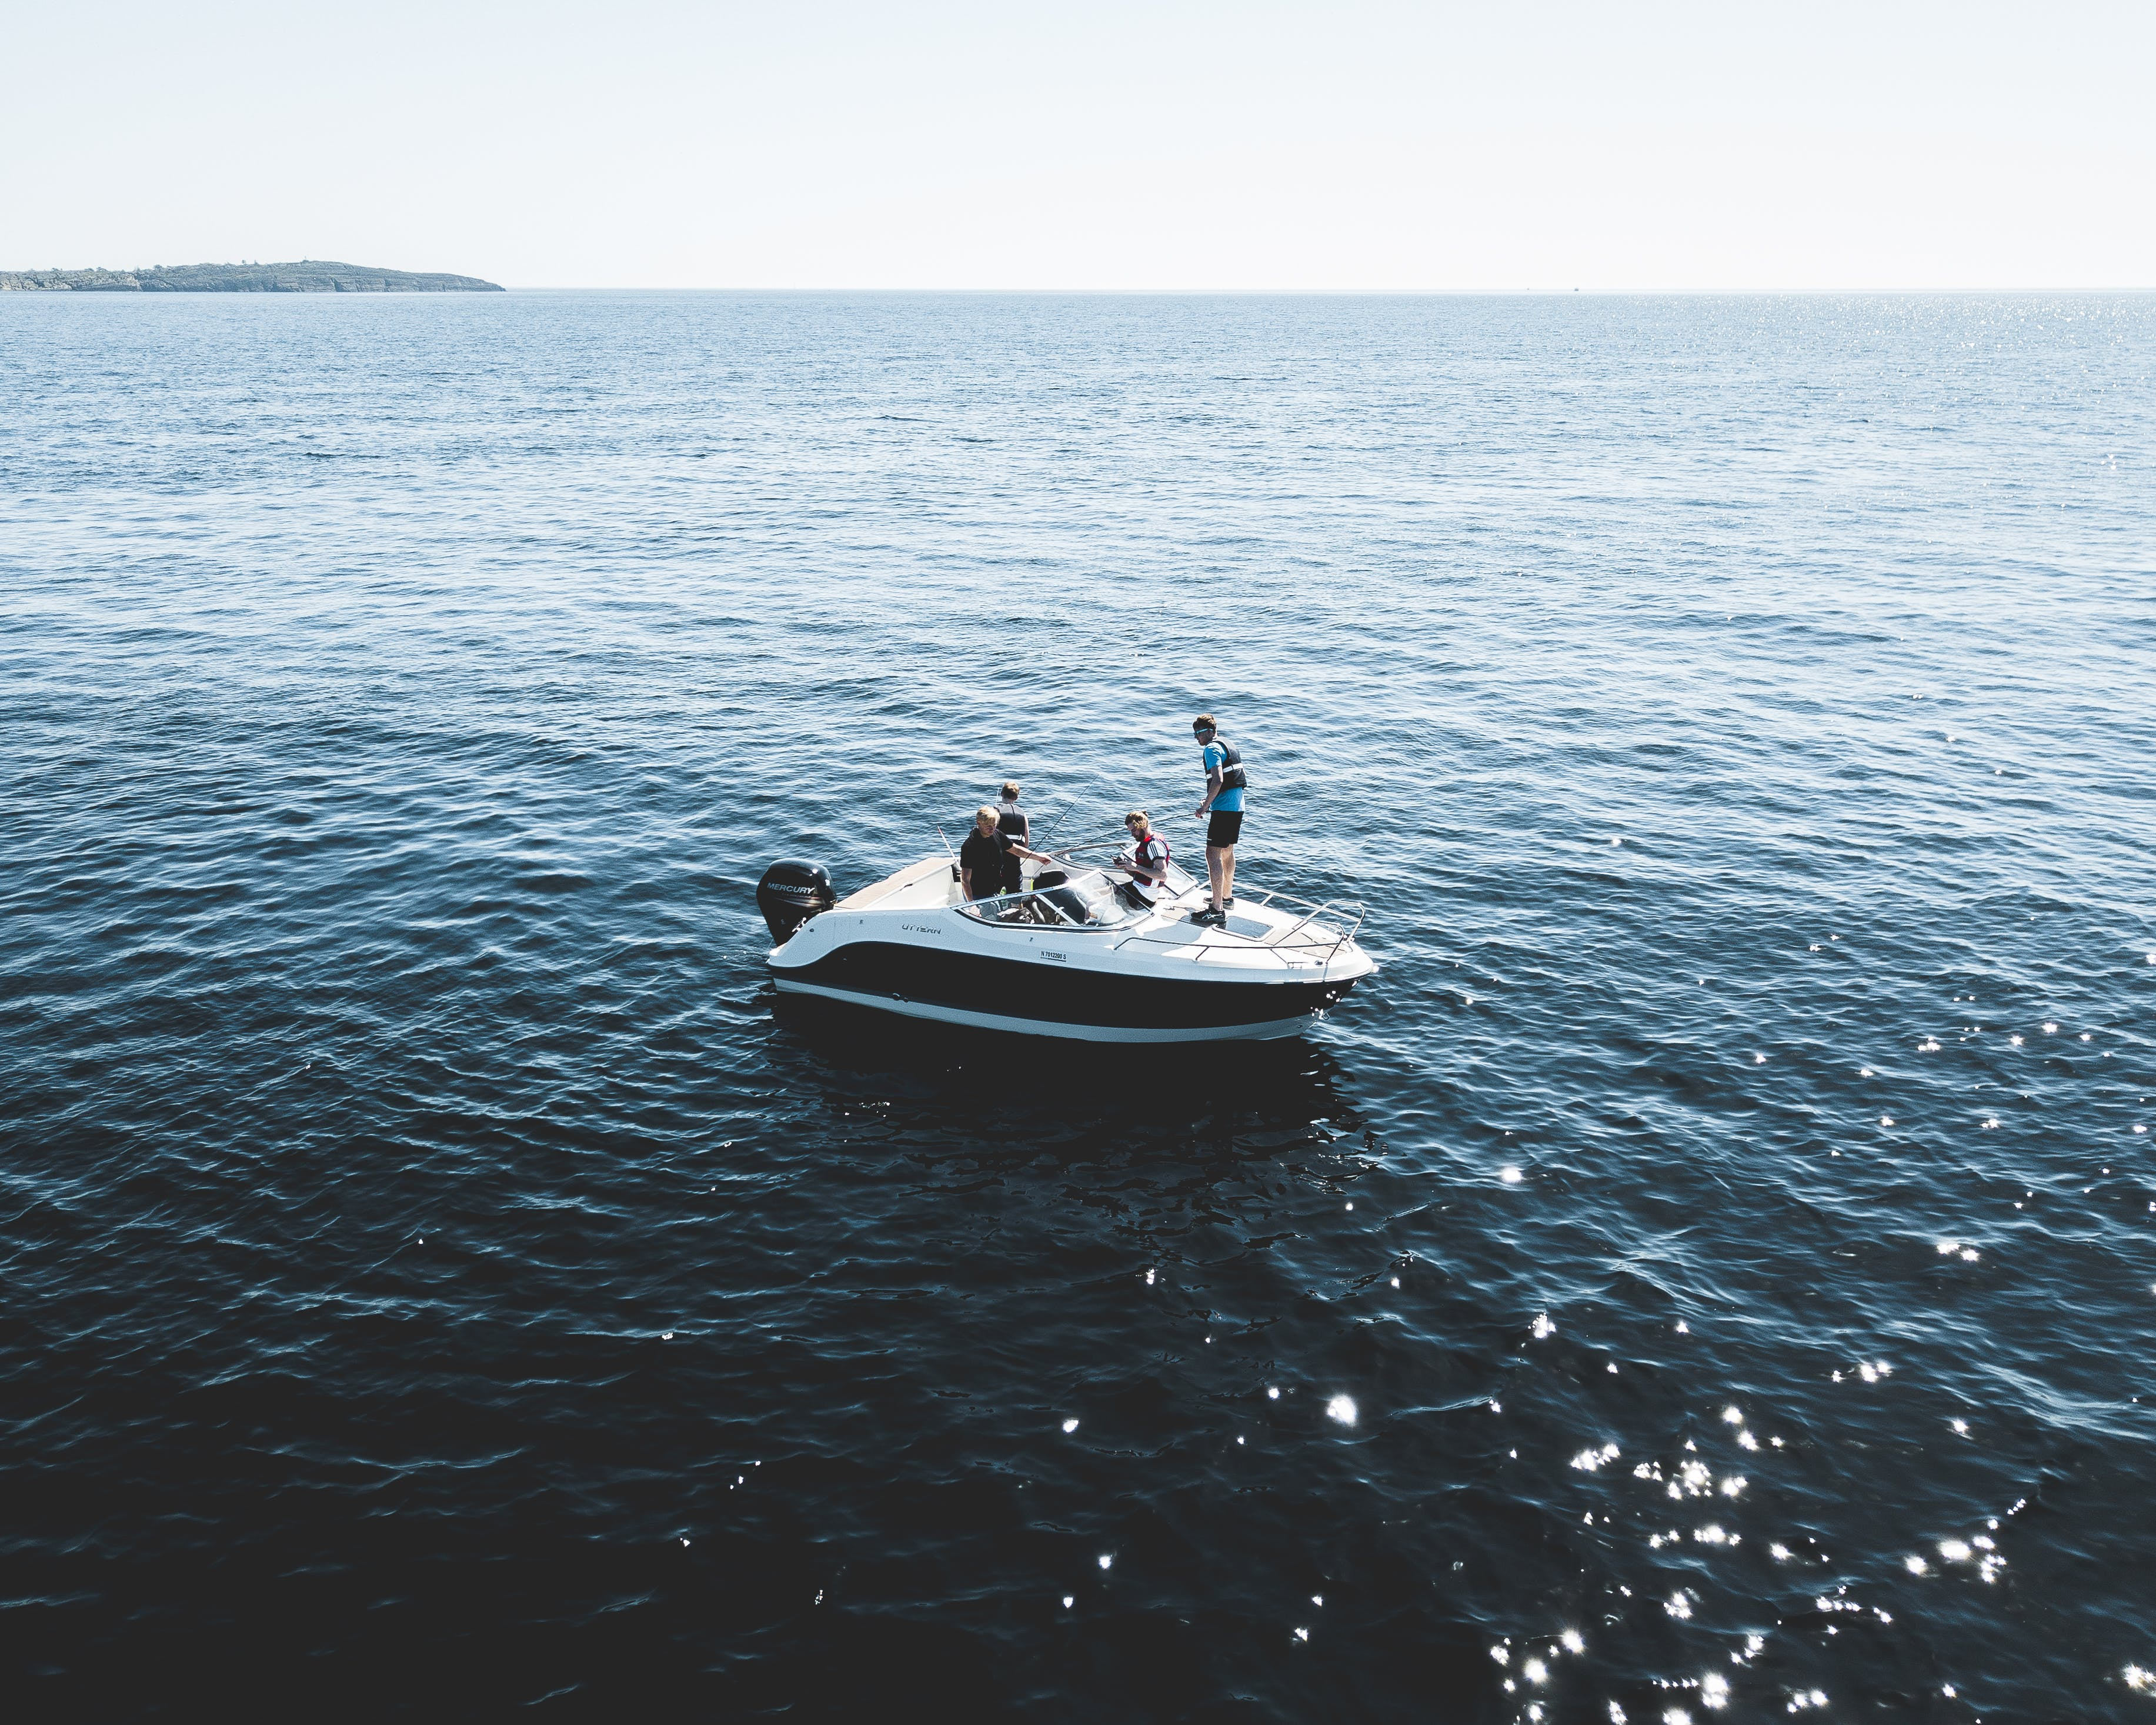 Three Person on White Motorboat at Daytime